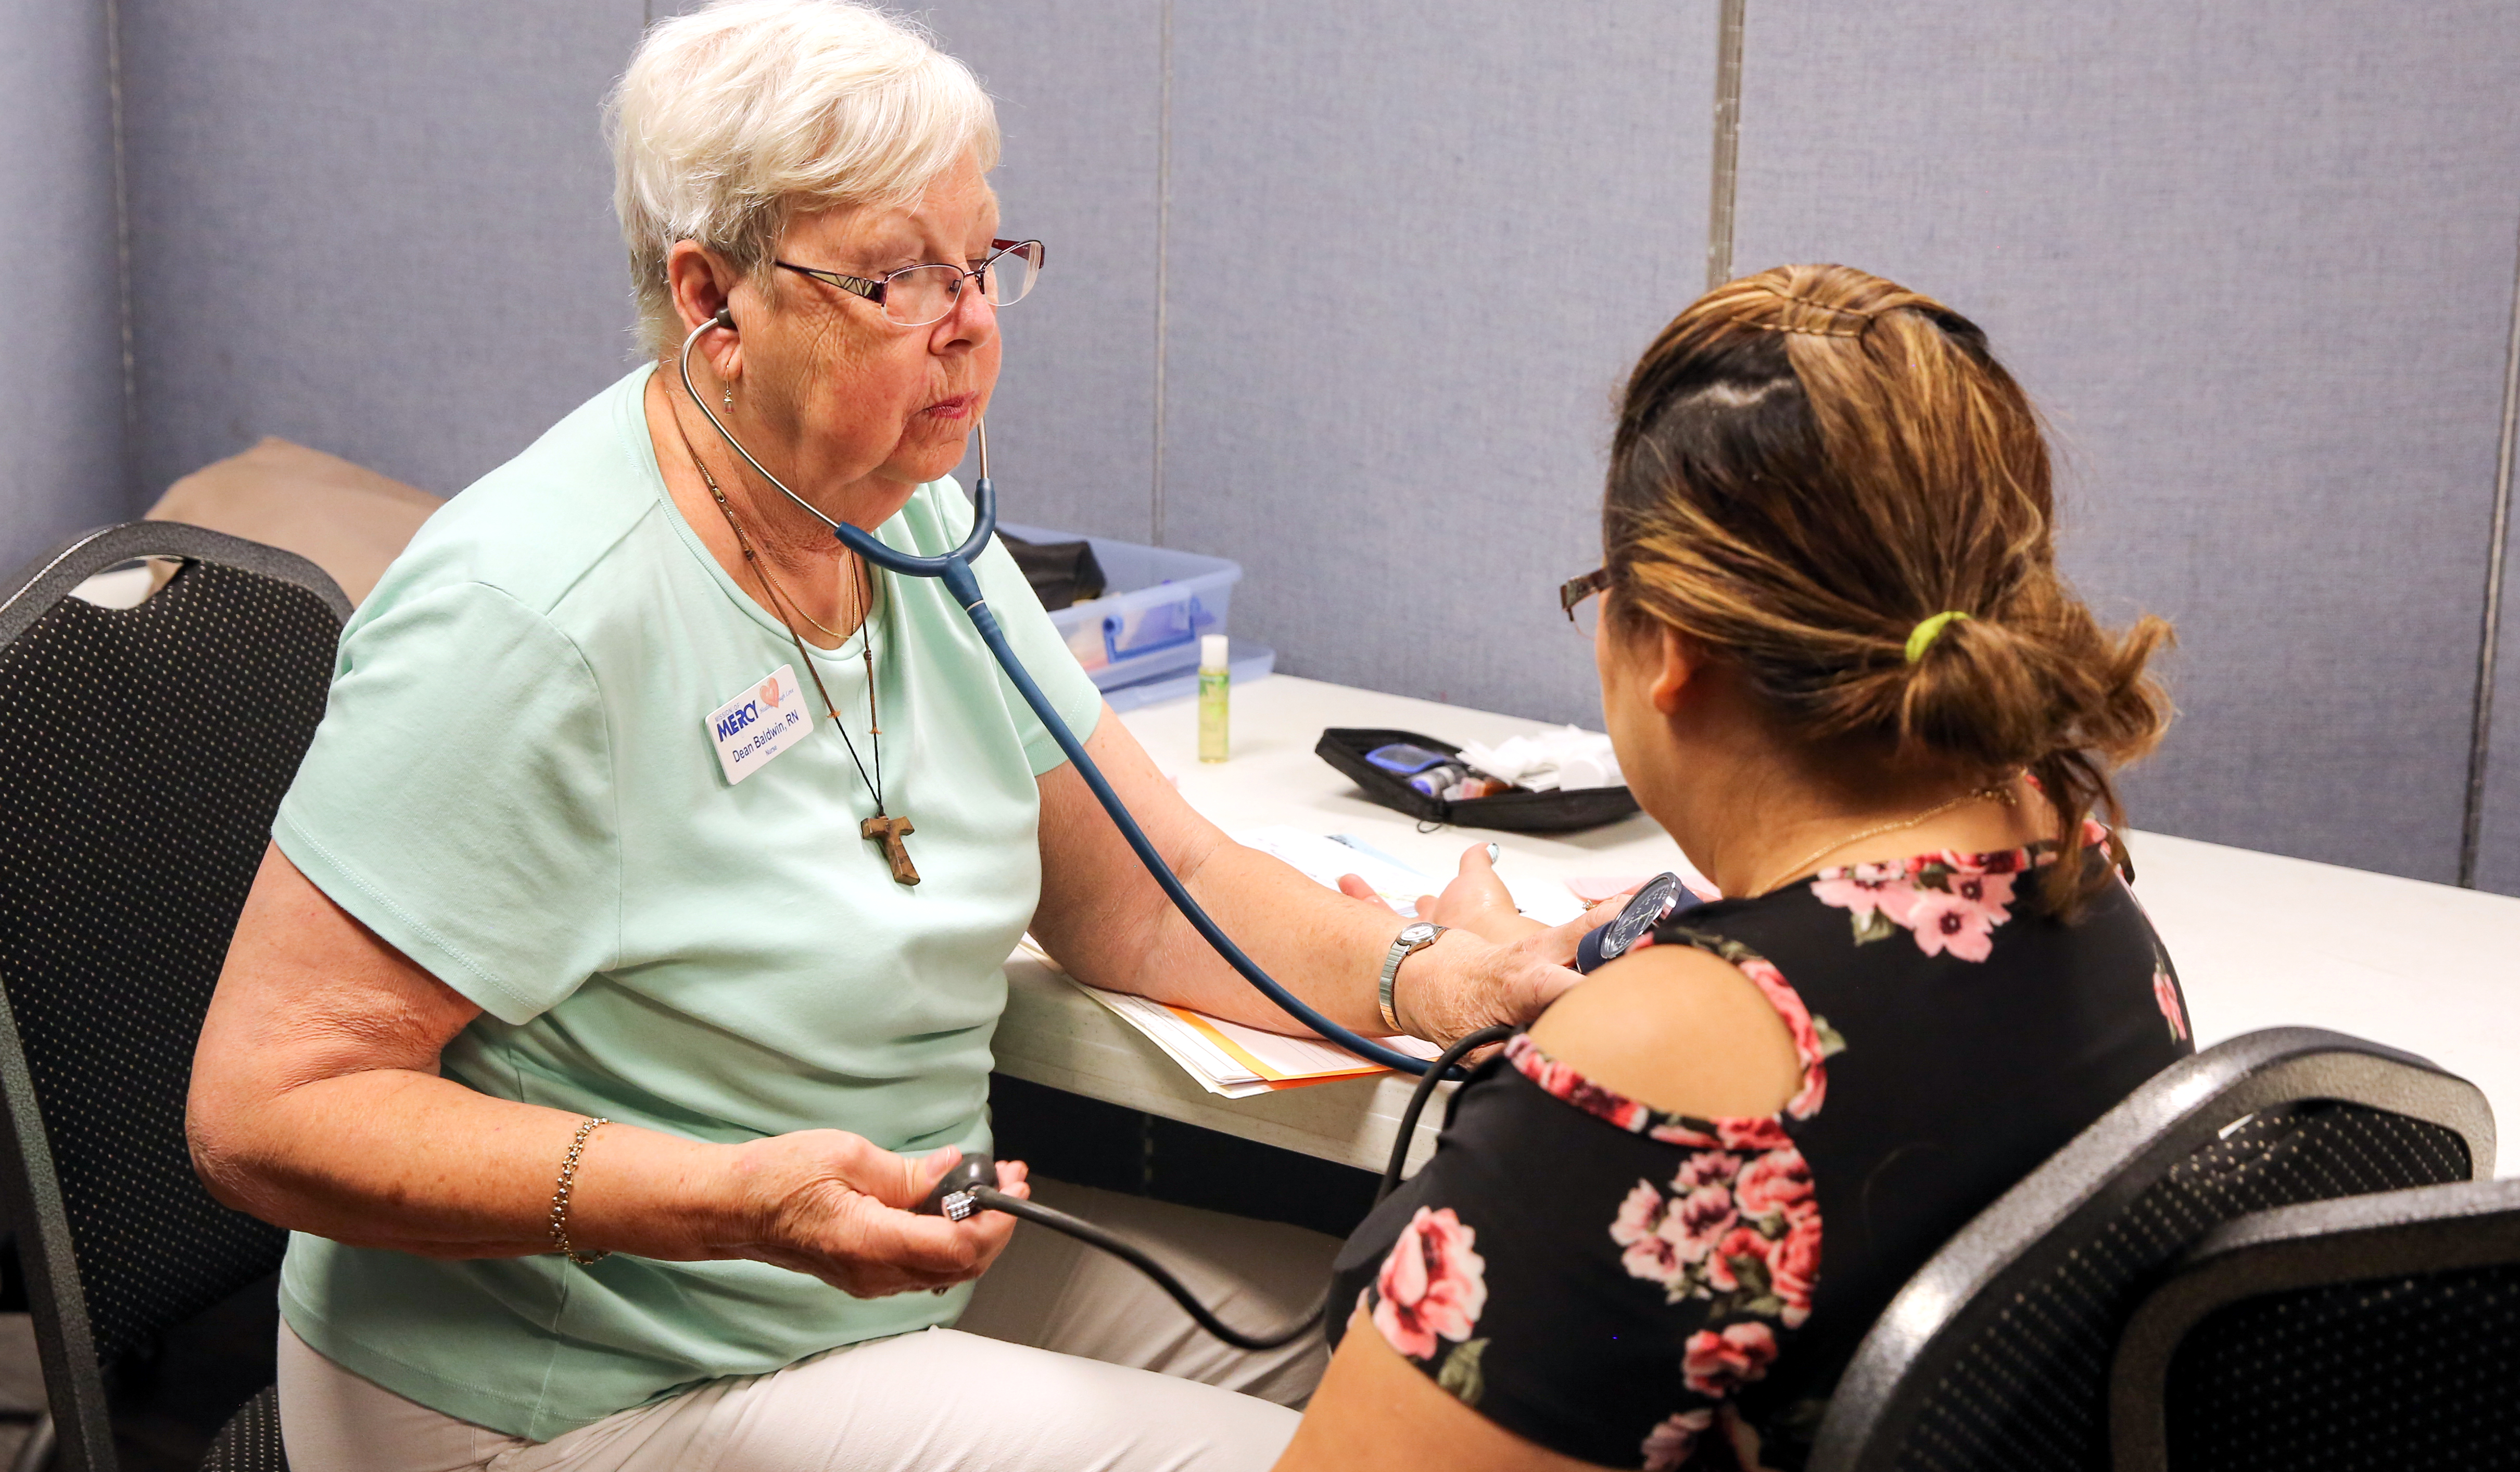 An older woman takes the blood pressure of a client